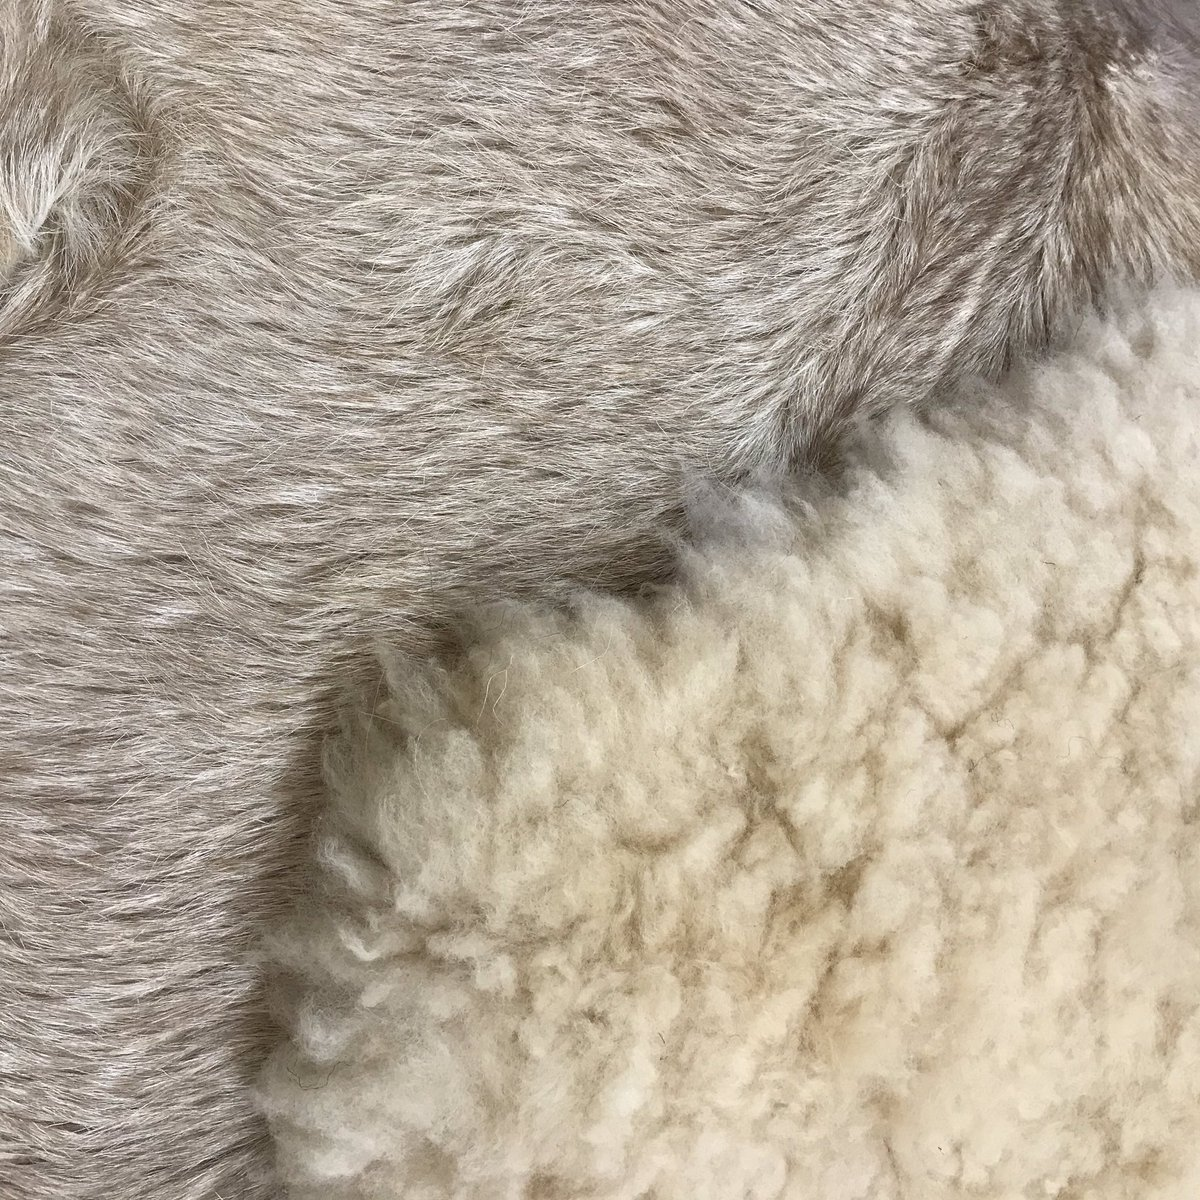 🌟🌟In support of @WelshRugbyUnion in the @rugbyworldcup we are posting a competition 🌟🌟 If the boys get to the semi finals we will be giving away a goatskin rug - if they get to the final we will be giving away a sheepskin rug!!! Got to be in it to win it 🏆 #RugbyWorldCup19